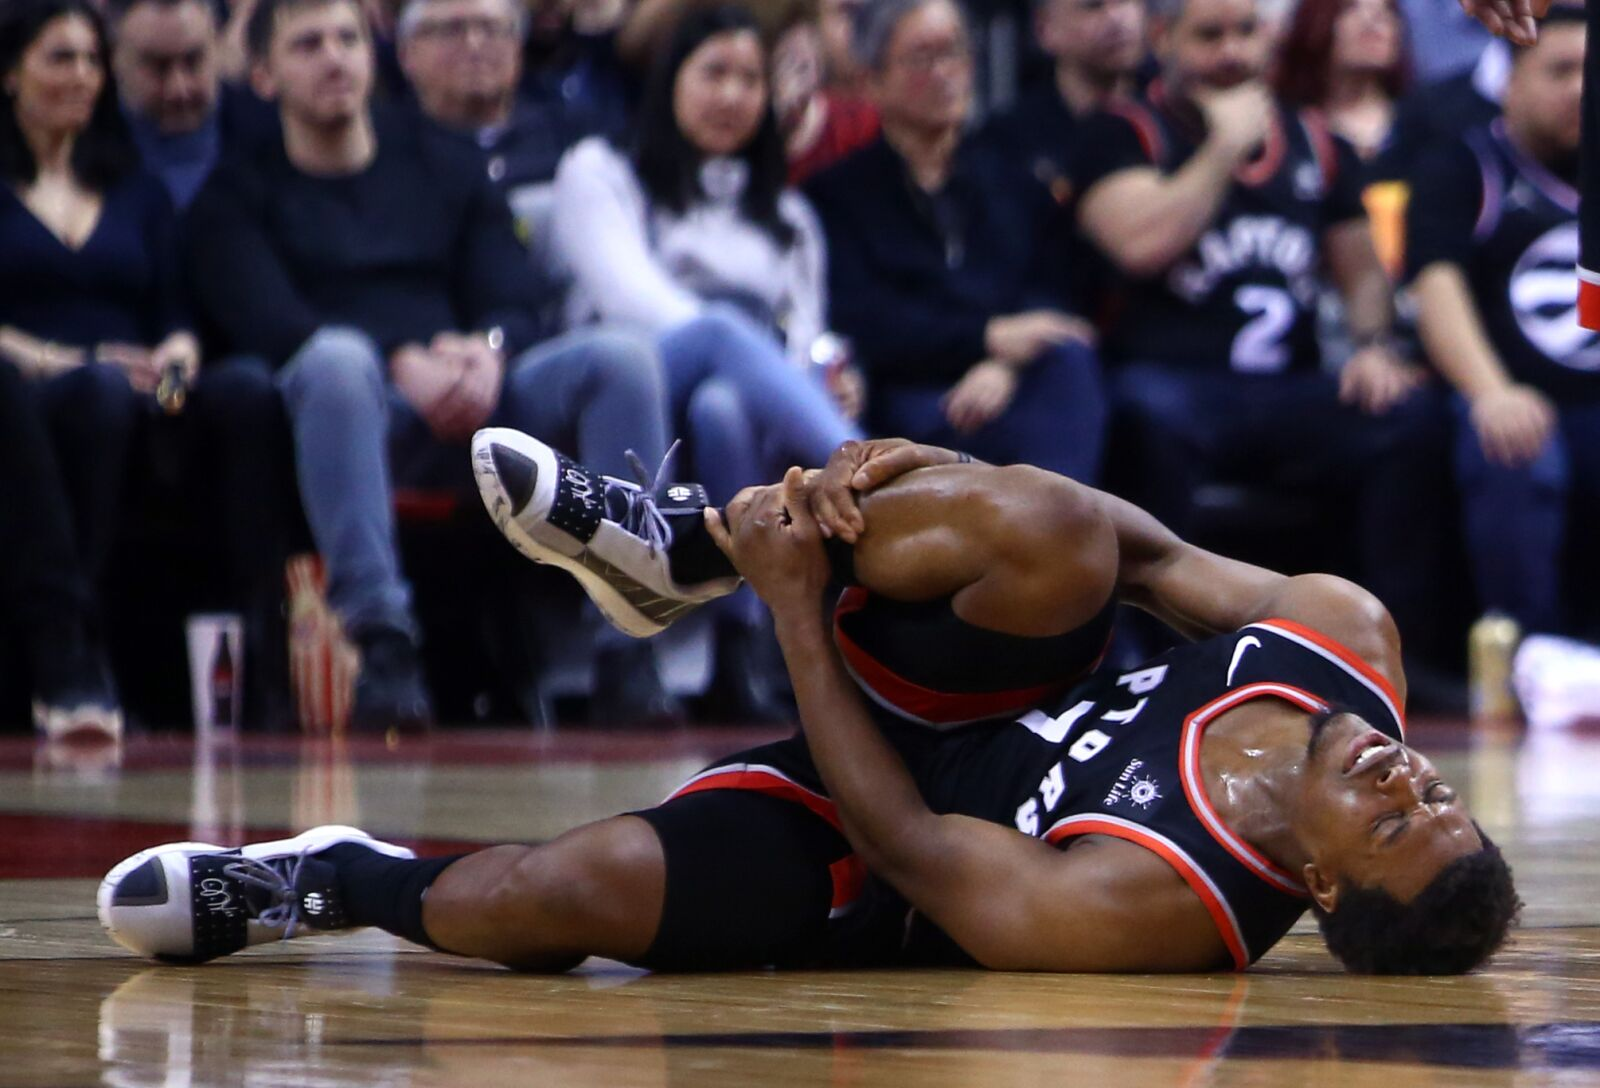 Toronto Raptors: No one is to blame for Kyle Lowry's injury